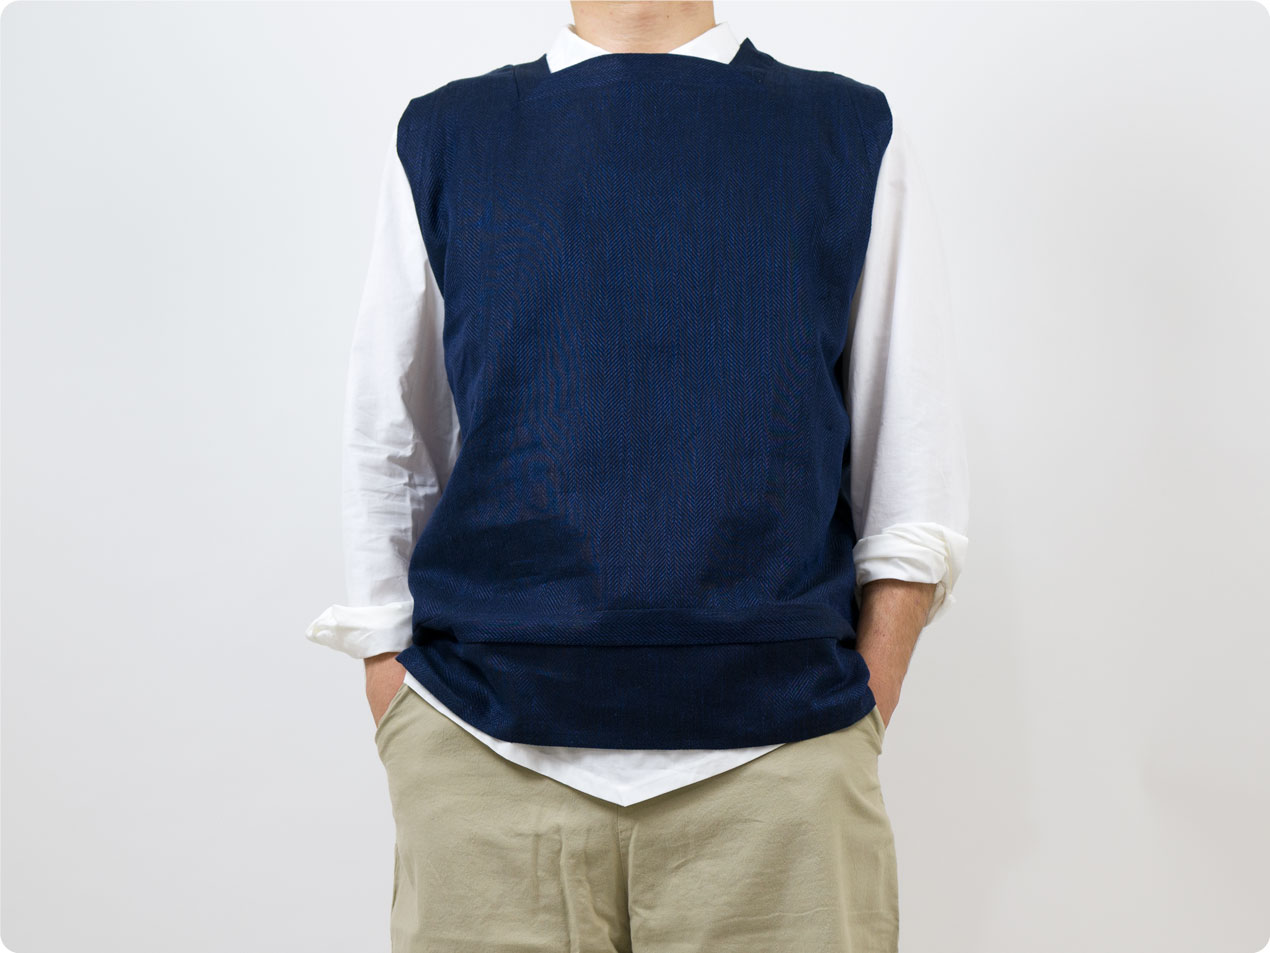 TATAMIZE SQUARE VEST /  P/O WORK SHIRTS